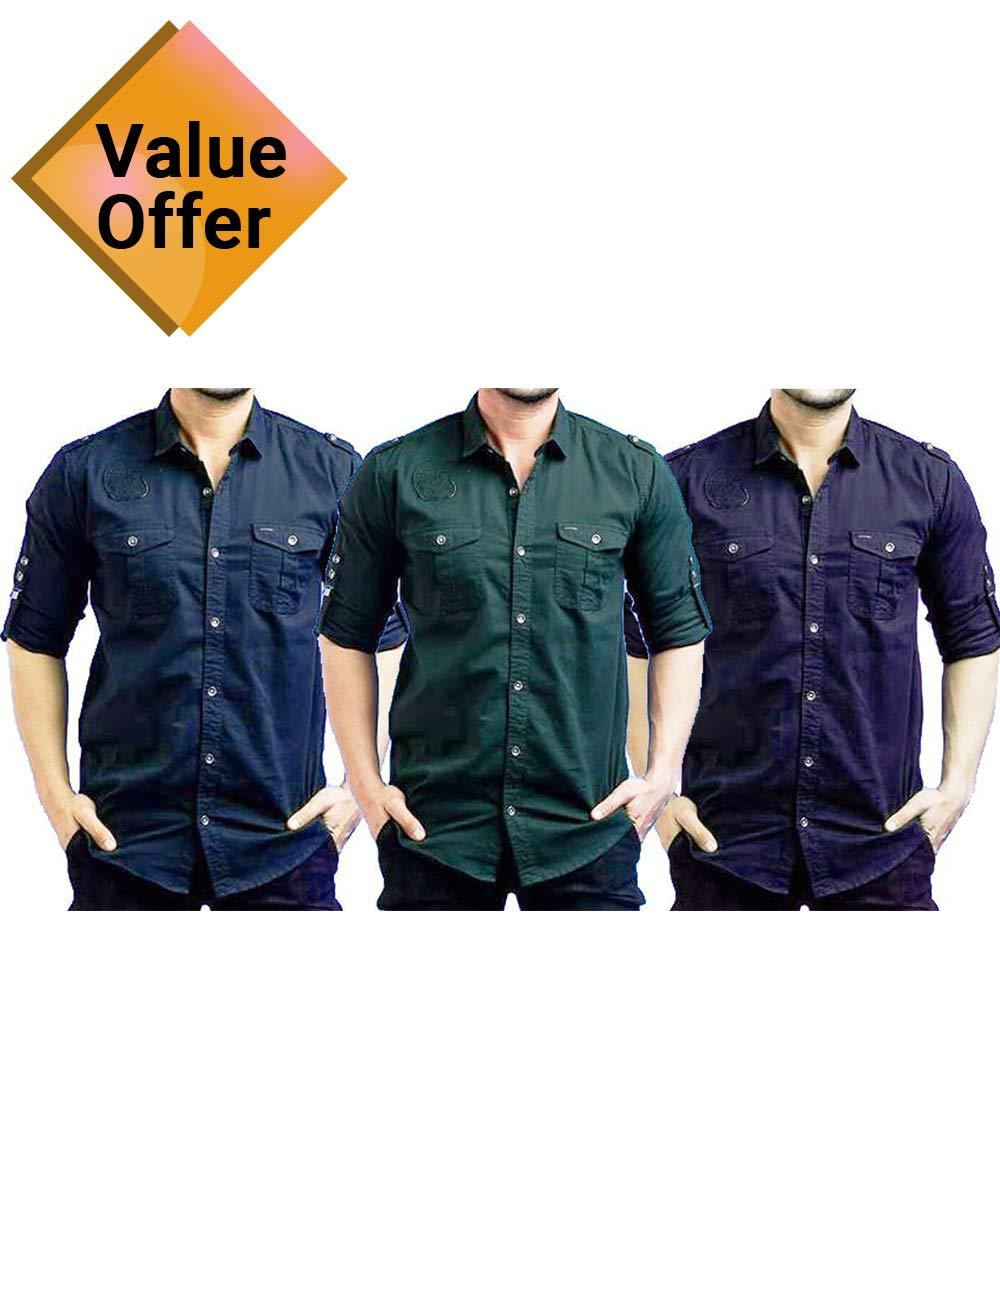 Pack of 3 Branded Casual Stylish Solid Comfortable Shirts for Men